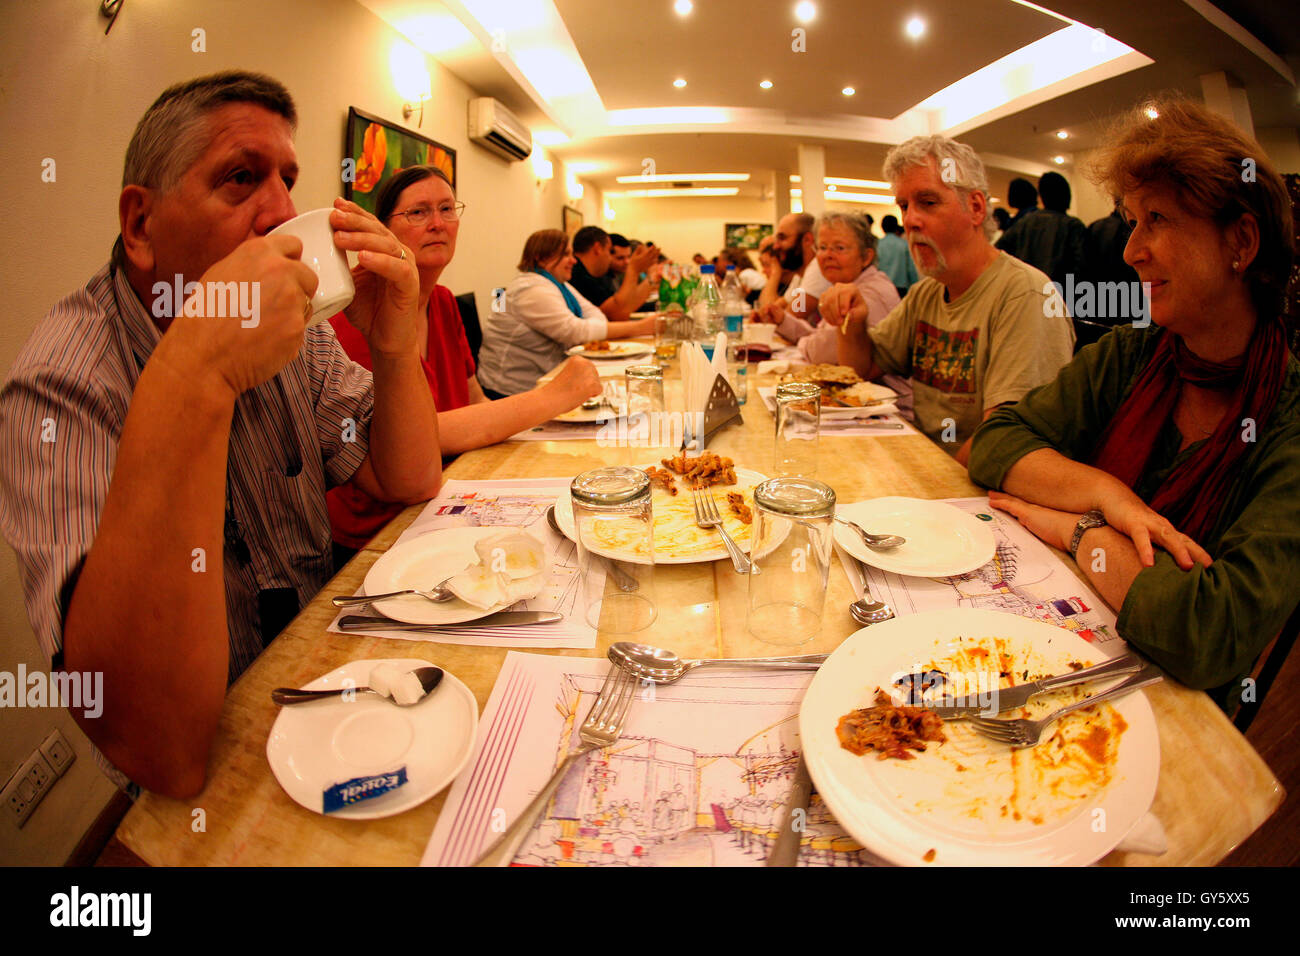 A farewell dinner meet (New Delhi, India) having members from different countries. - Stock Image